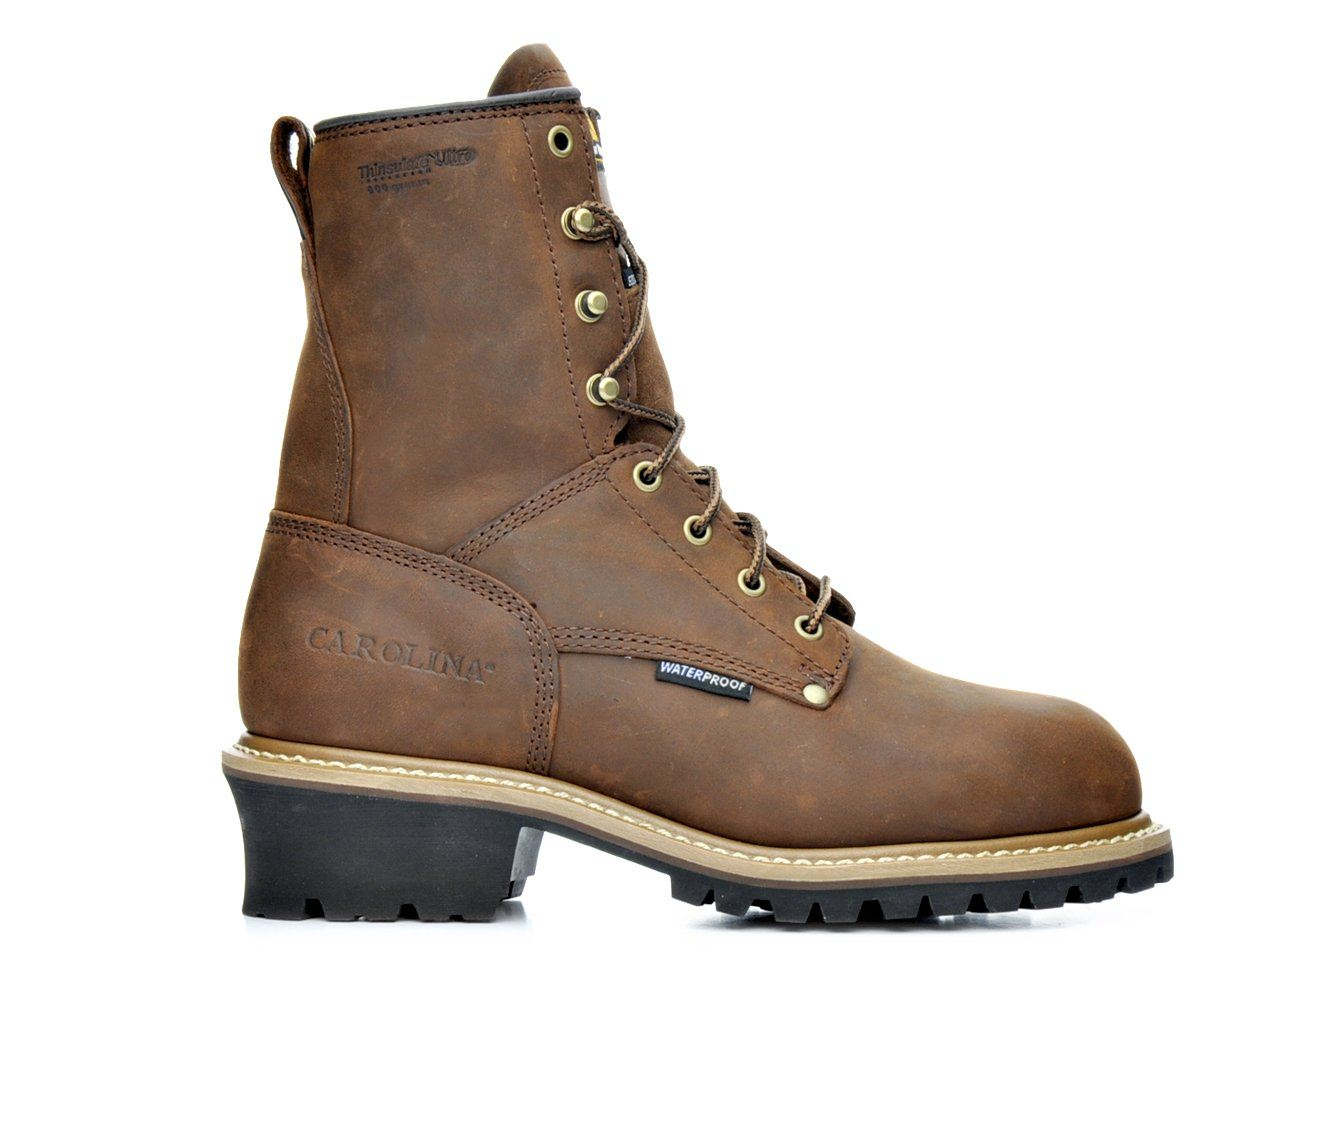 Carolina Boots CA5821 8 In Steel Toe Insulated Men's Boots (Brown Leather)